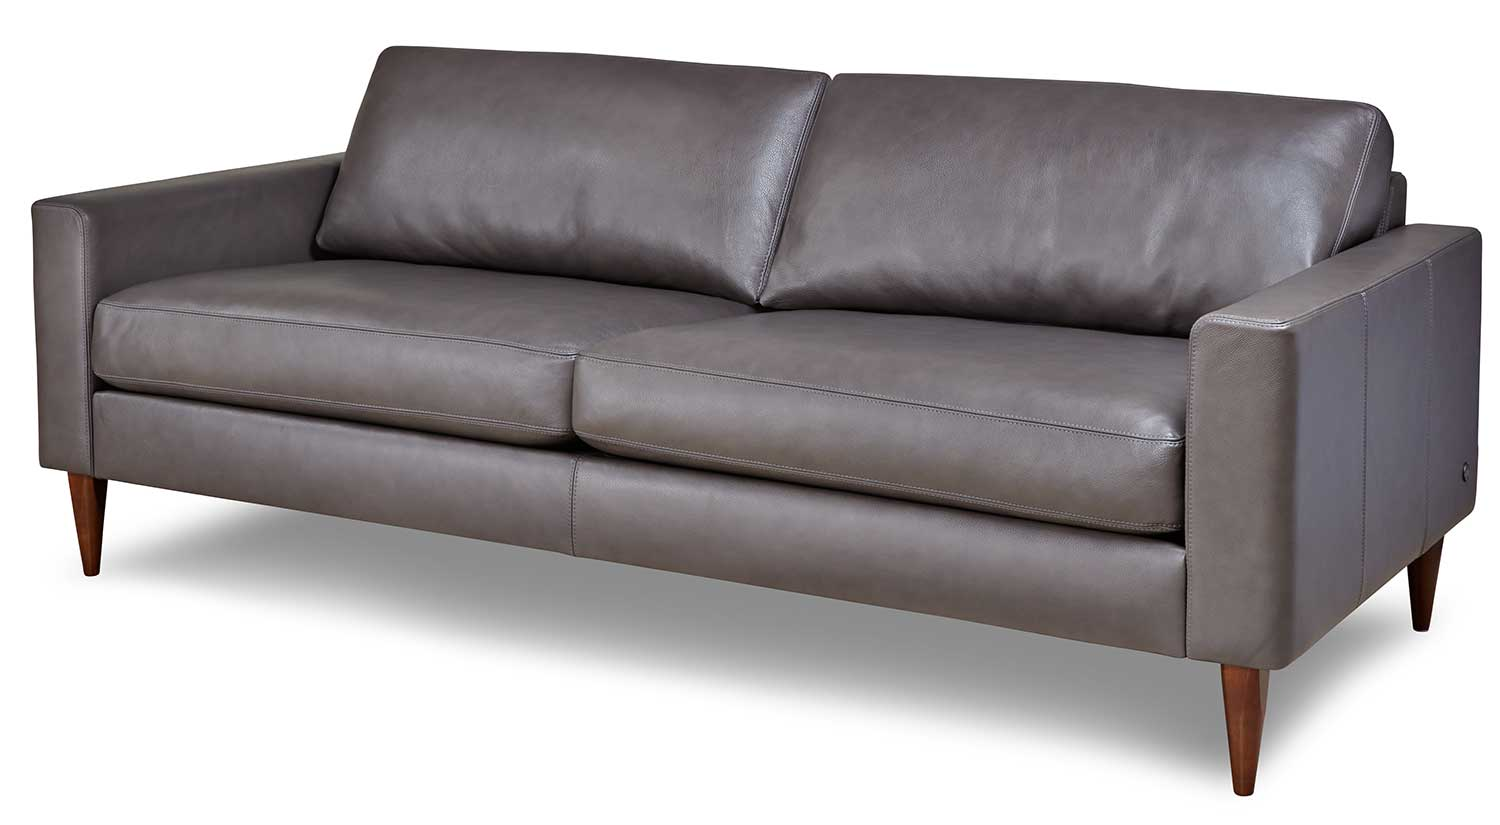 Circle Furniture Sofas And Loveseats